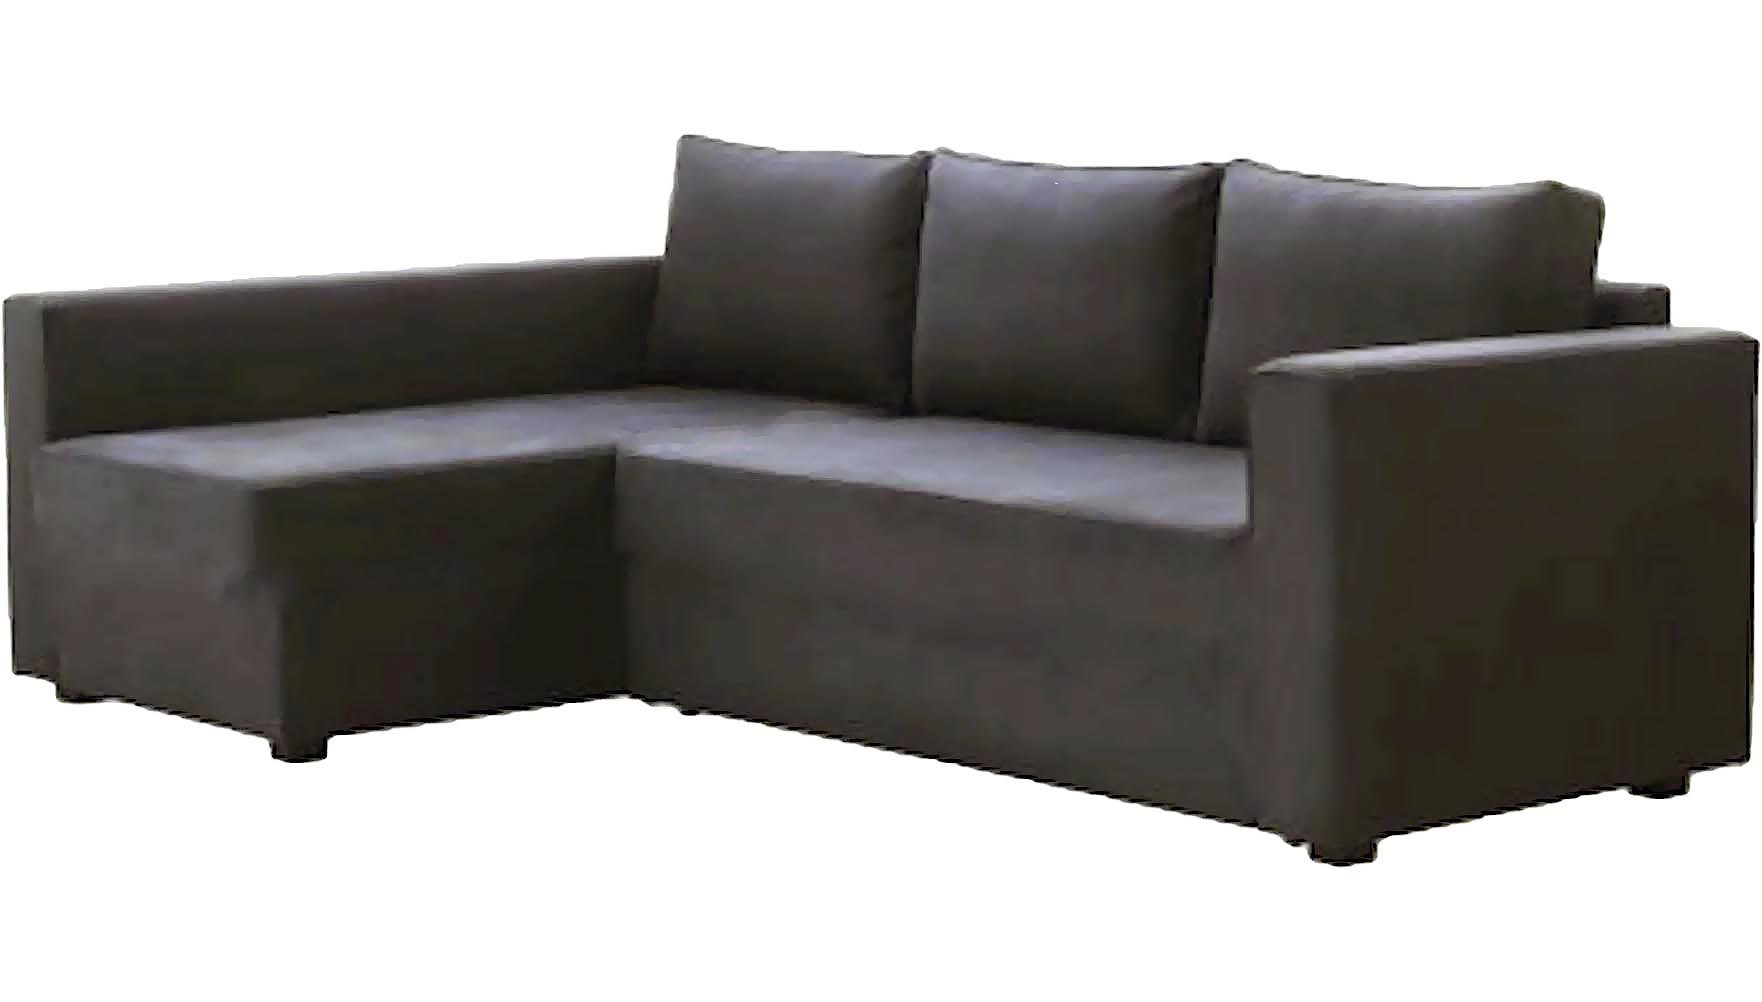 The Dark Gray Manstad Cover Replacement Is Custom Made For Ikea Manstad Sofa Bed, Or Sectional, Or Corner Slipcover. Sofa Cover Only!. (Longer Right Arm)